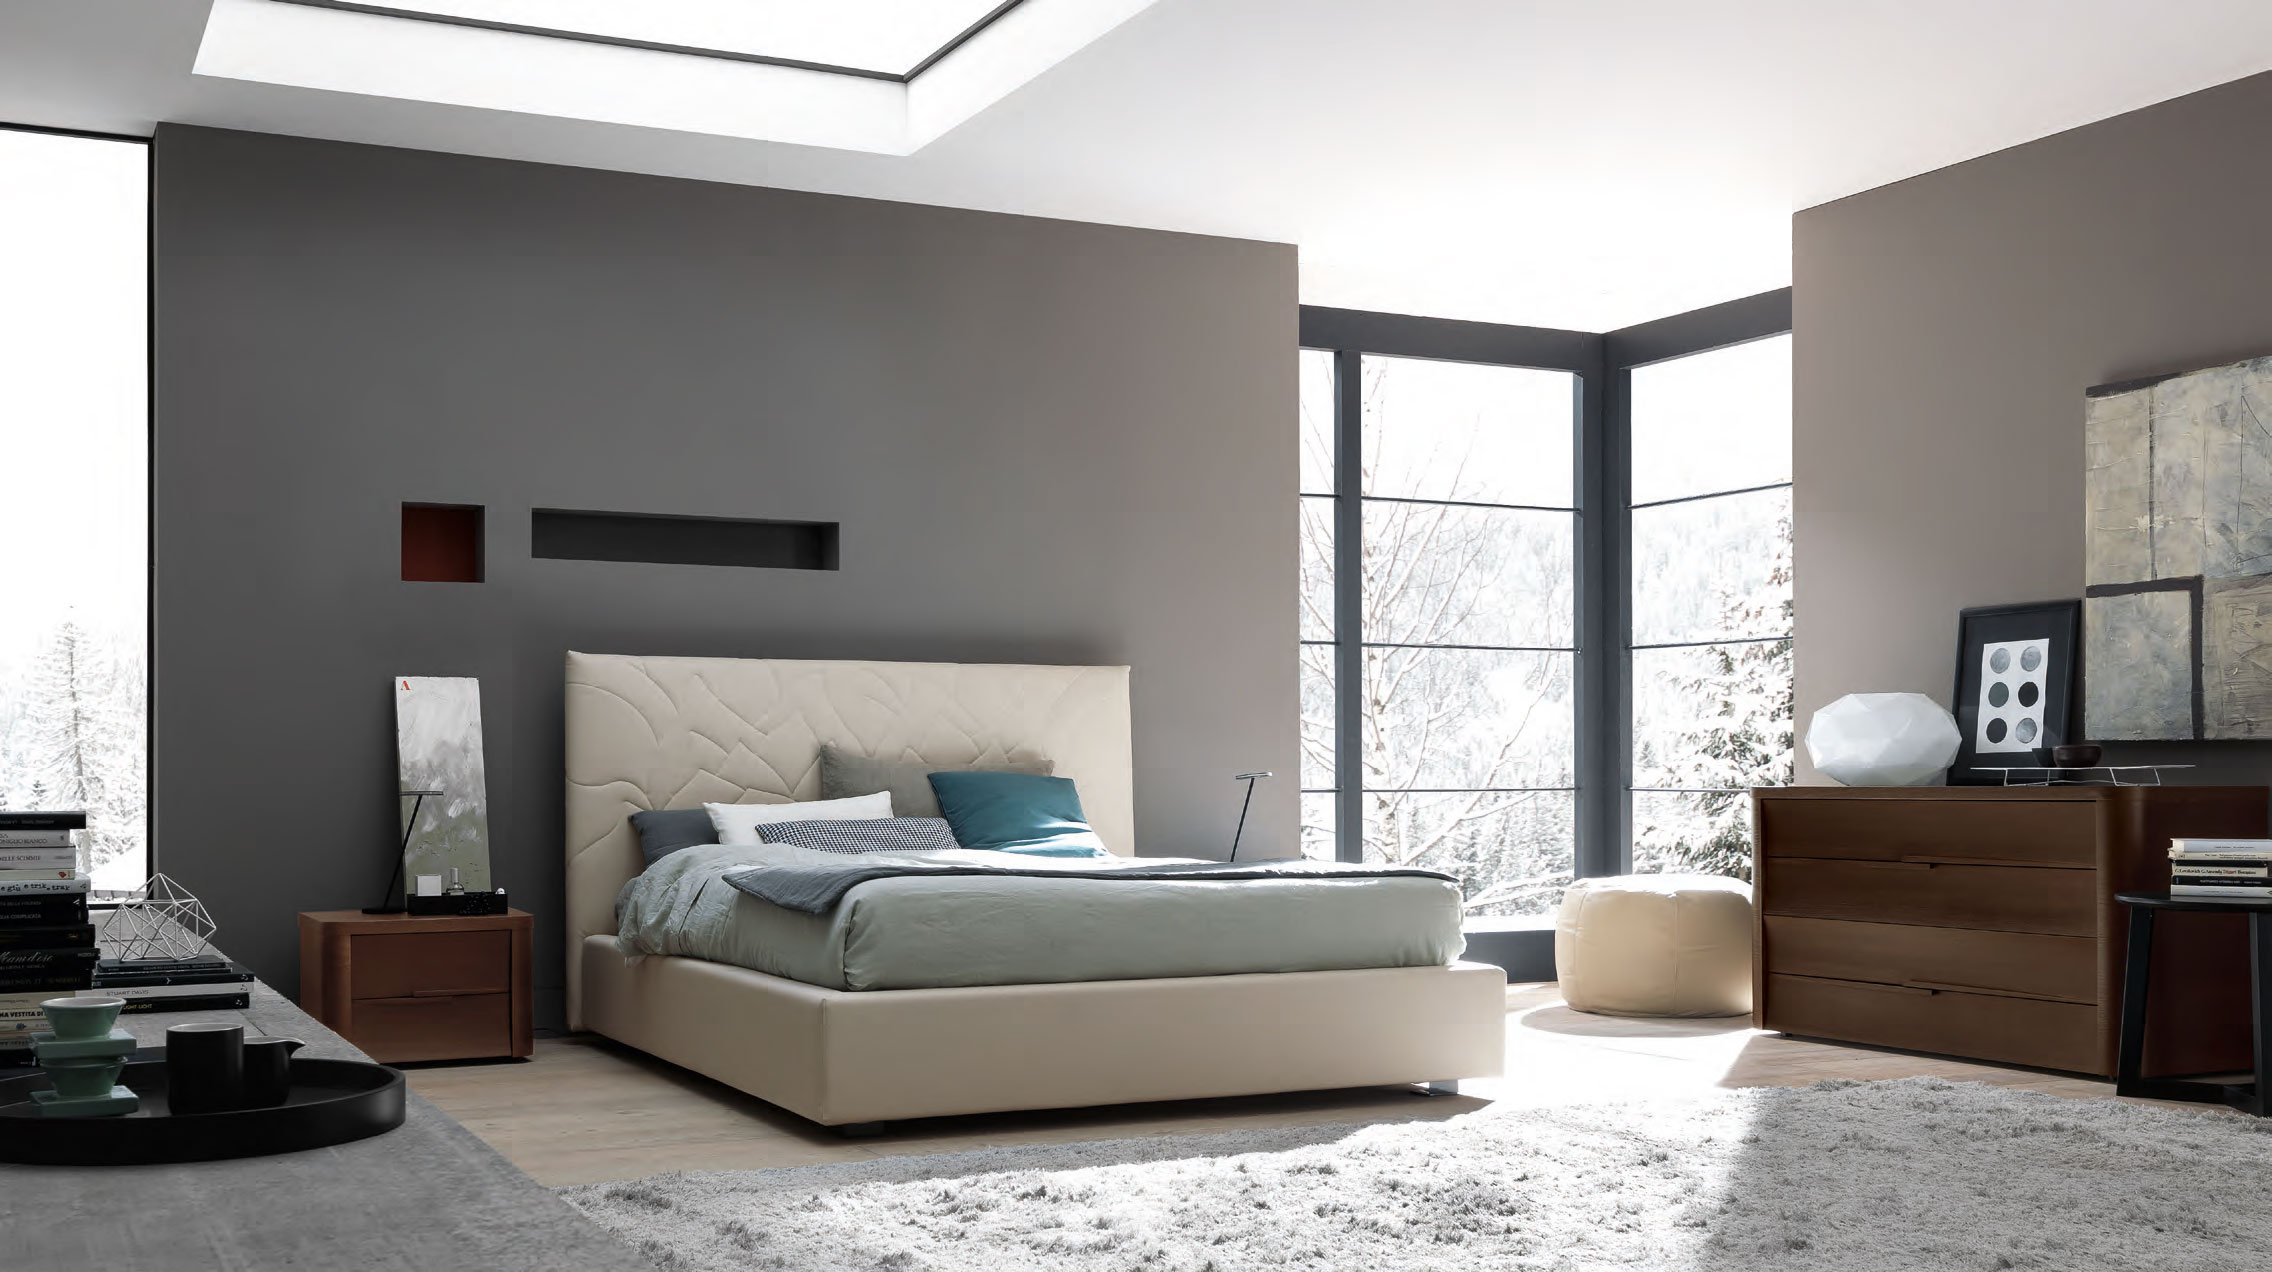 pieces furniture that tufted of pin design interior style bedroom out go never grey